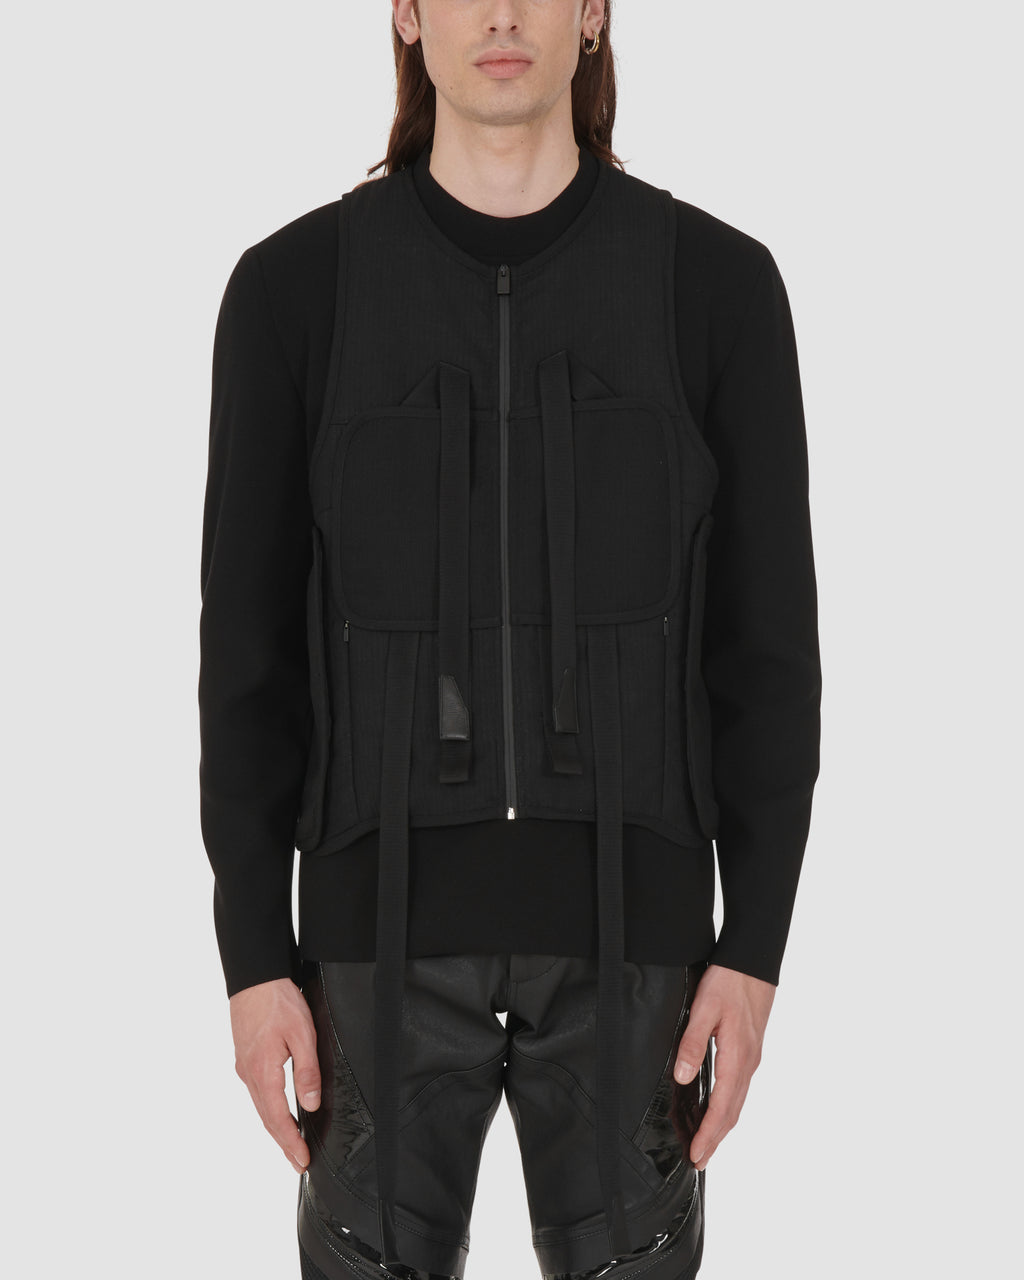 1017 ALYX 9SM | MODERN TACTICAL VEST | Outerwear | BLACK, Google Shopping, Man, MEN, Outerwear, S20, SS20